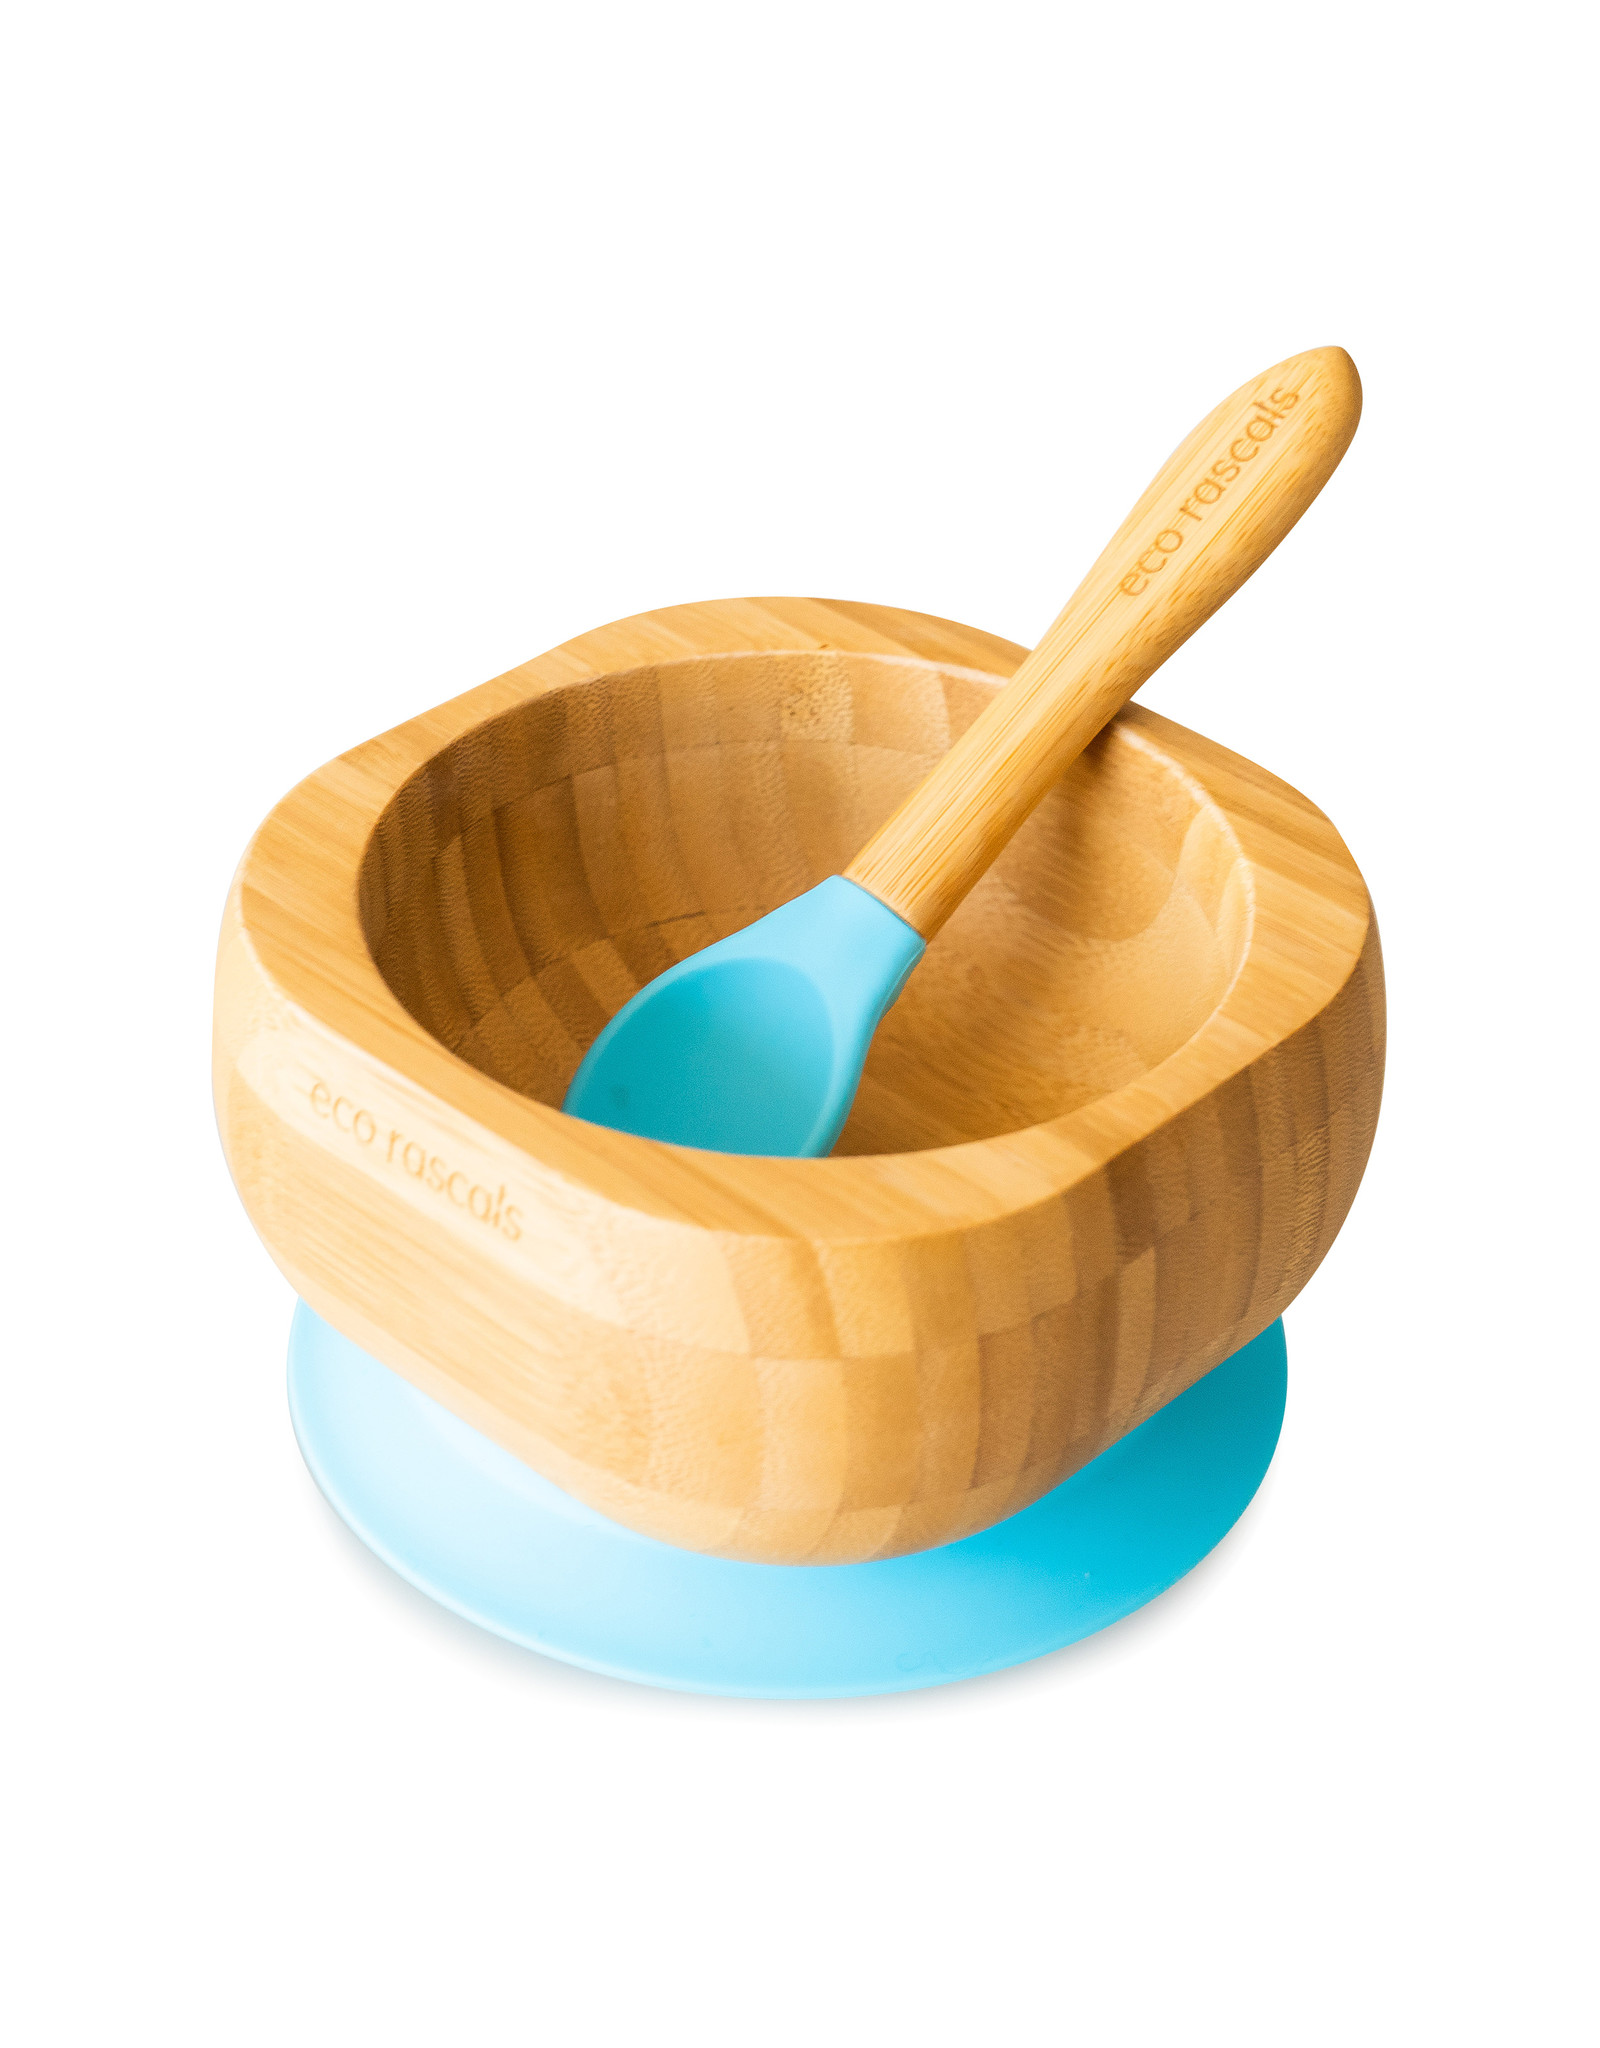 Eco Rascals Baby Bamboo Suction Bowl and Spoon Set- Blue